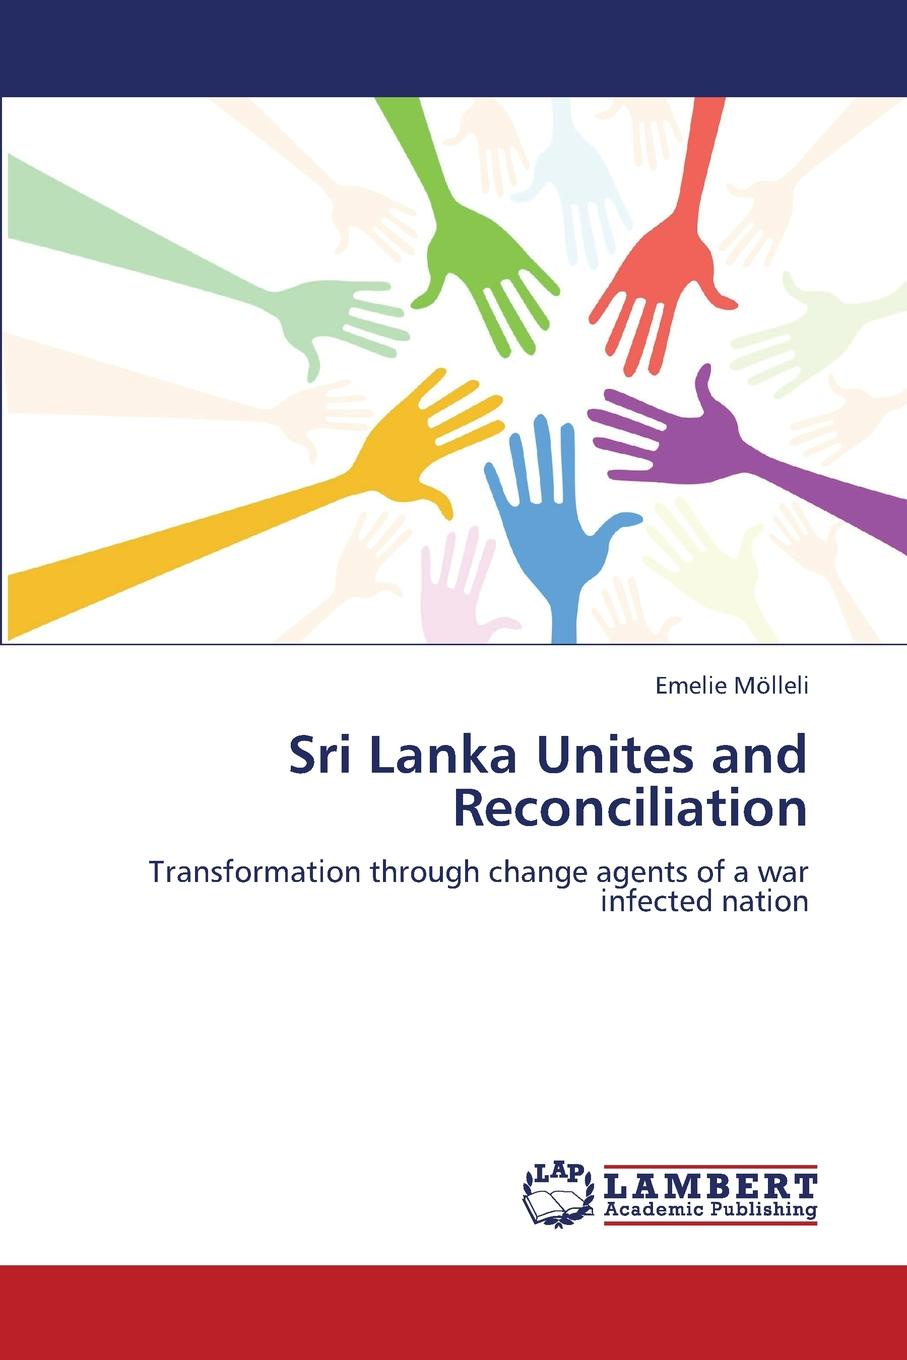 Molleli Emelie Sri Lanka Unites and Reconciliation dilan prasad harsha senanayake the influence of the civil war on mahinda rajapaksa s foreign policy in sri lanka during 2005 2015